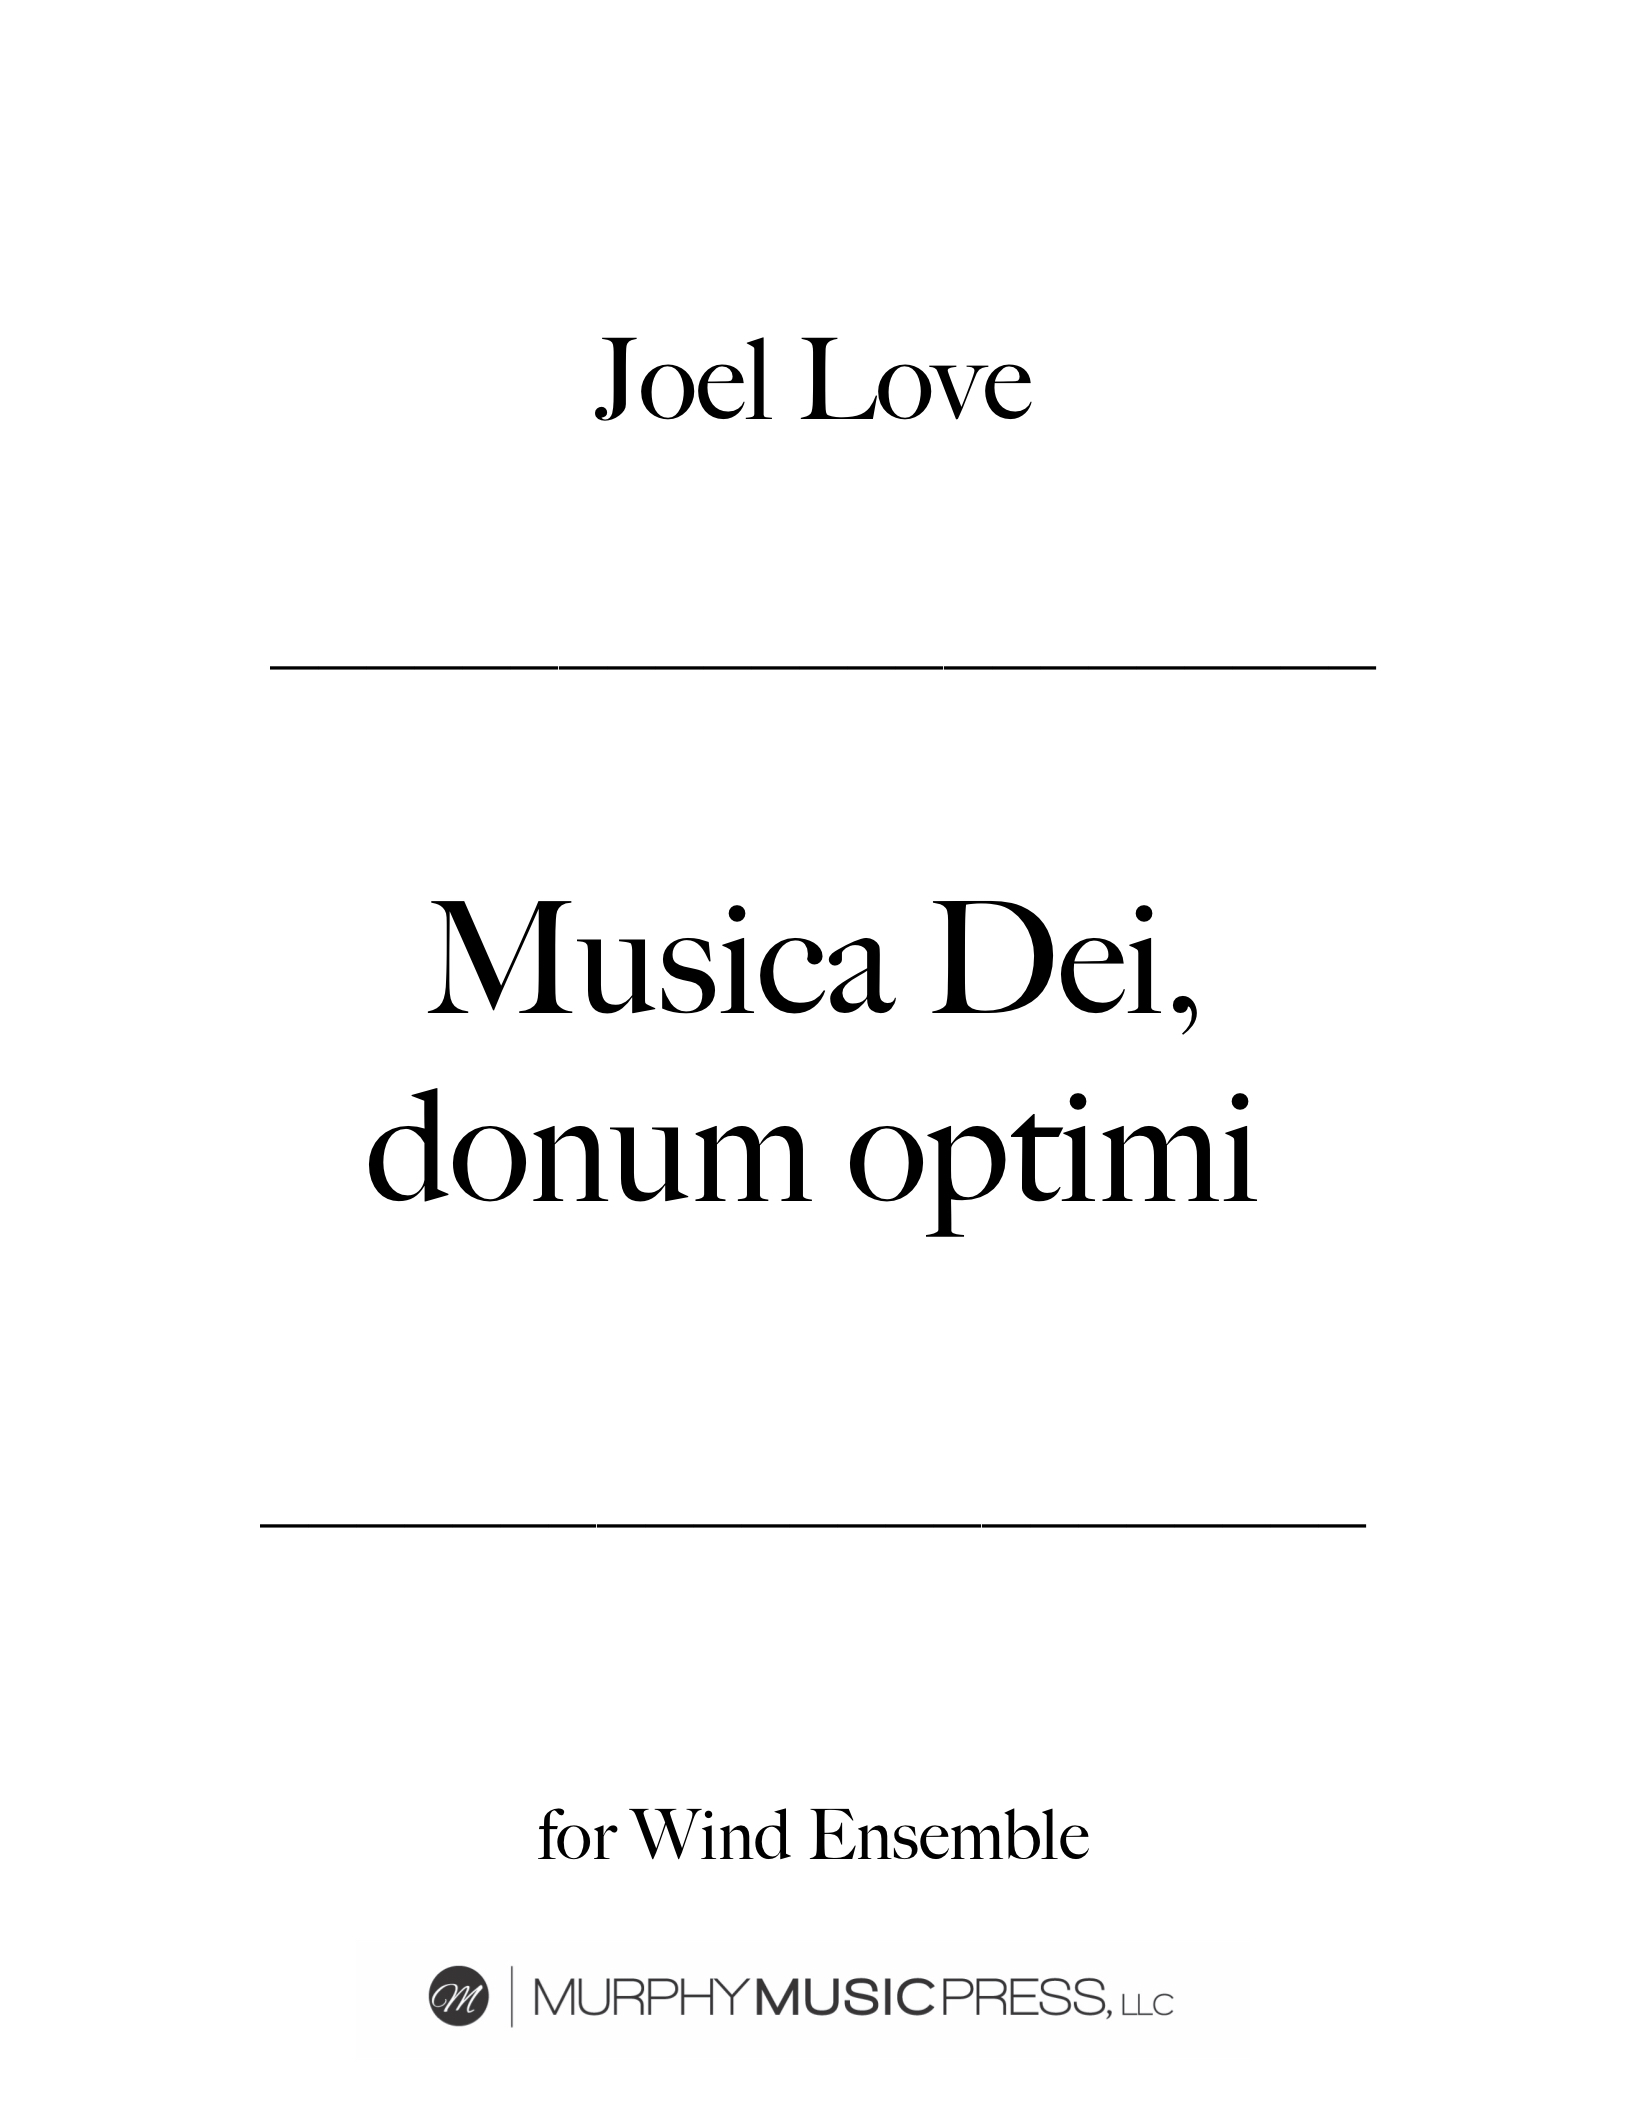 Musica Dei, Donum Optimi  by Joel Love